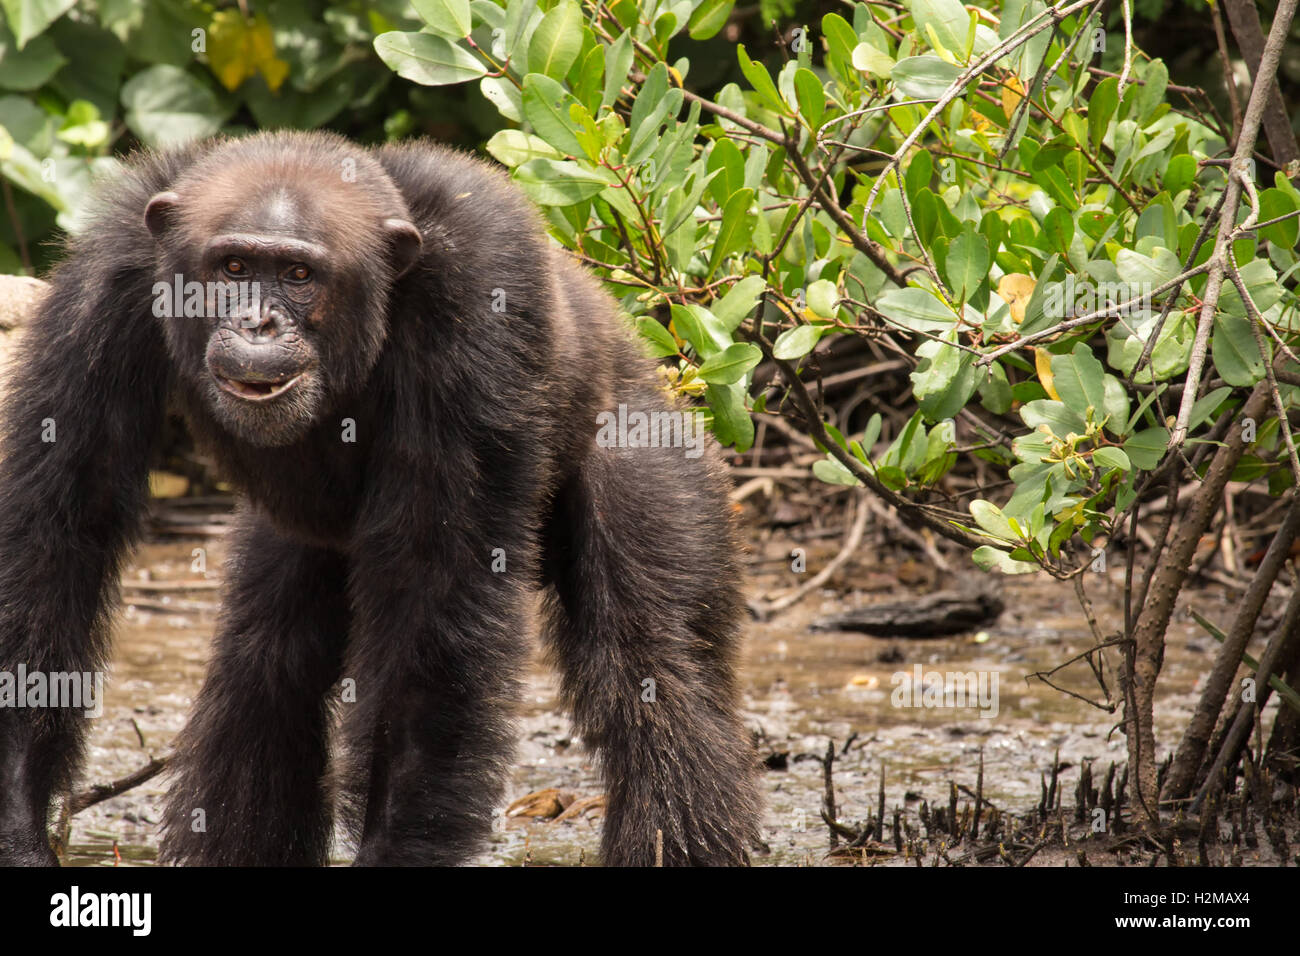 A chimpanzee stands in the mud at the waters edge on Monkey Island in Liberia. - Stock Image